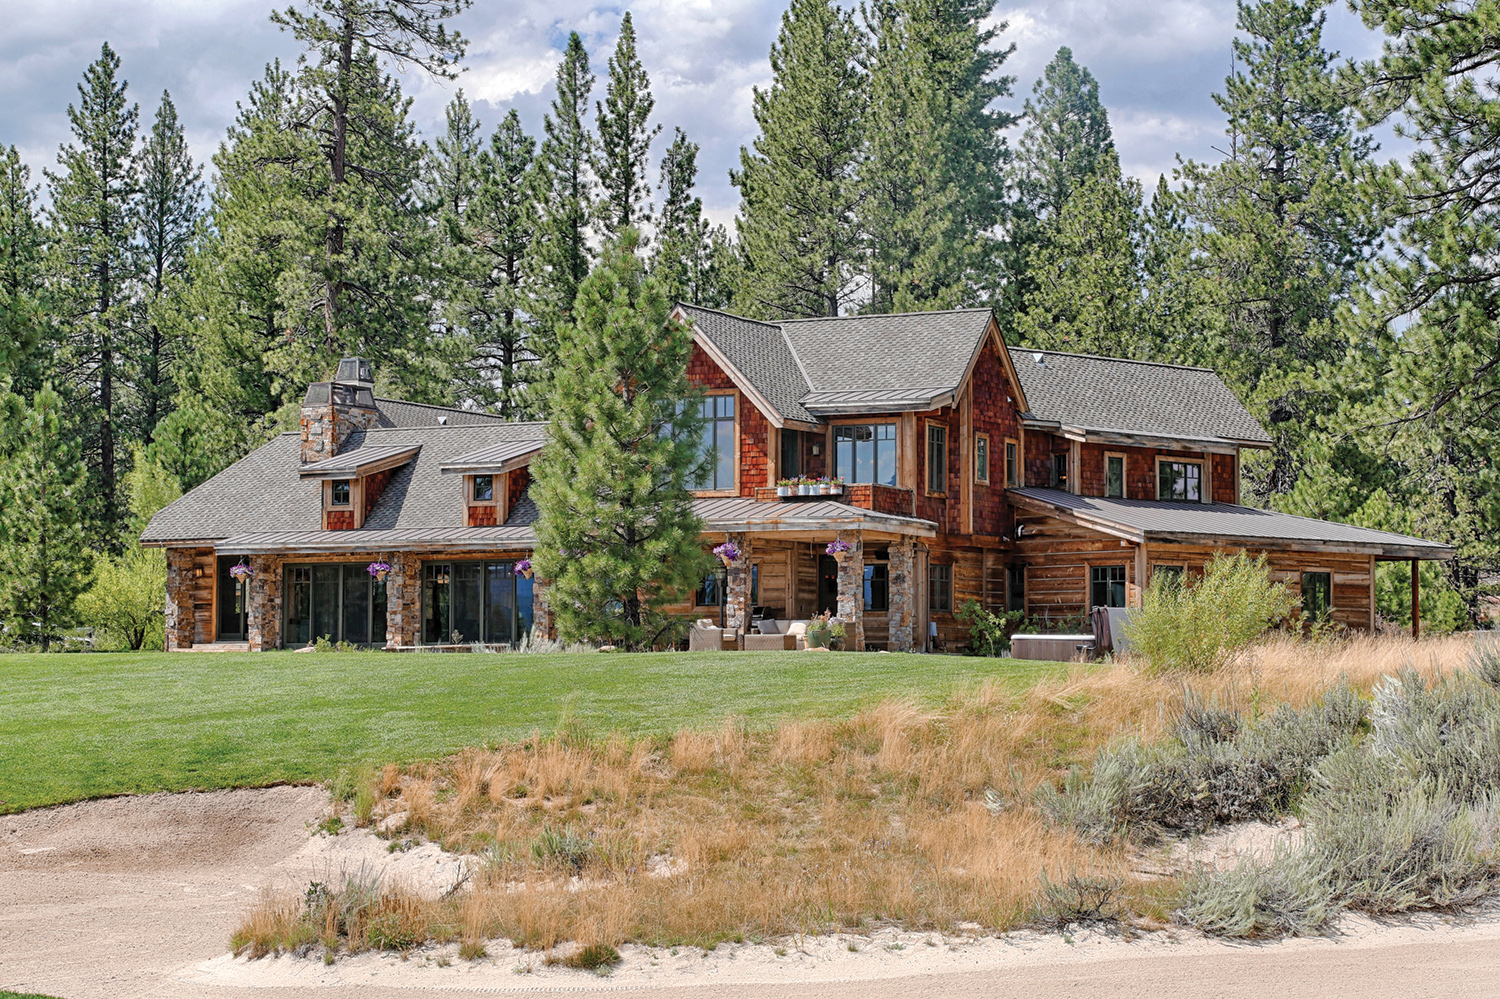 12565 Settlers Lane, Truckee,  listed with Overall & Hamilton Group for $3,500,000